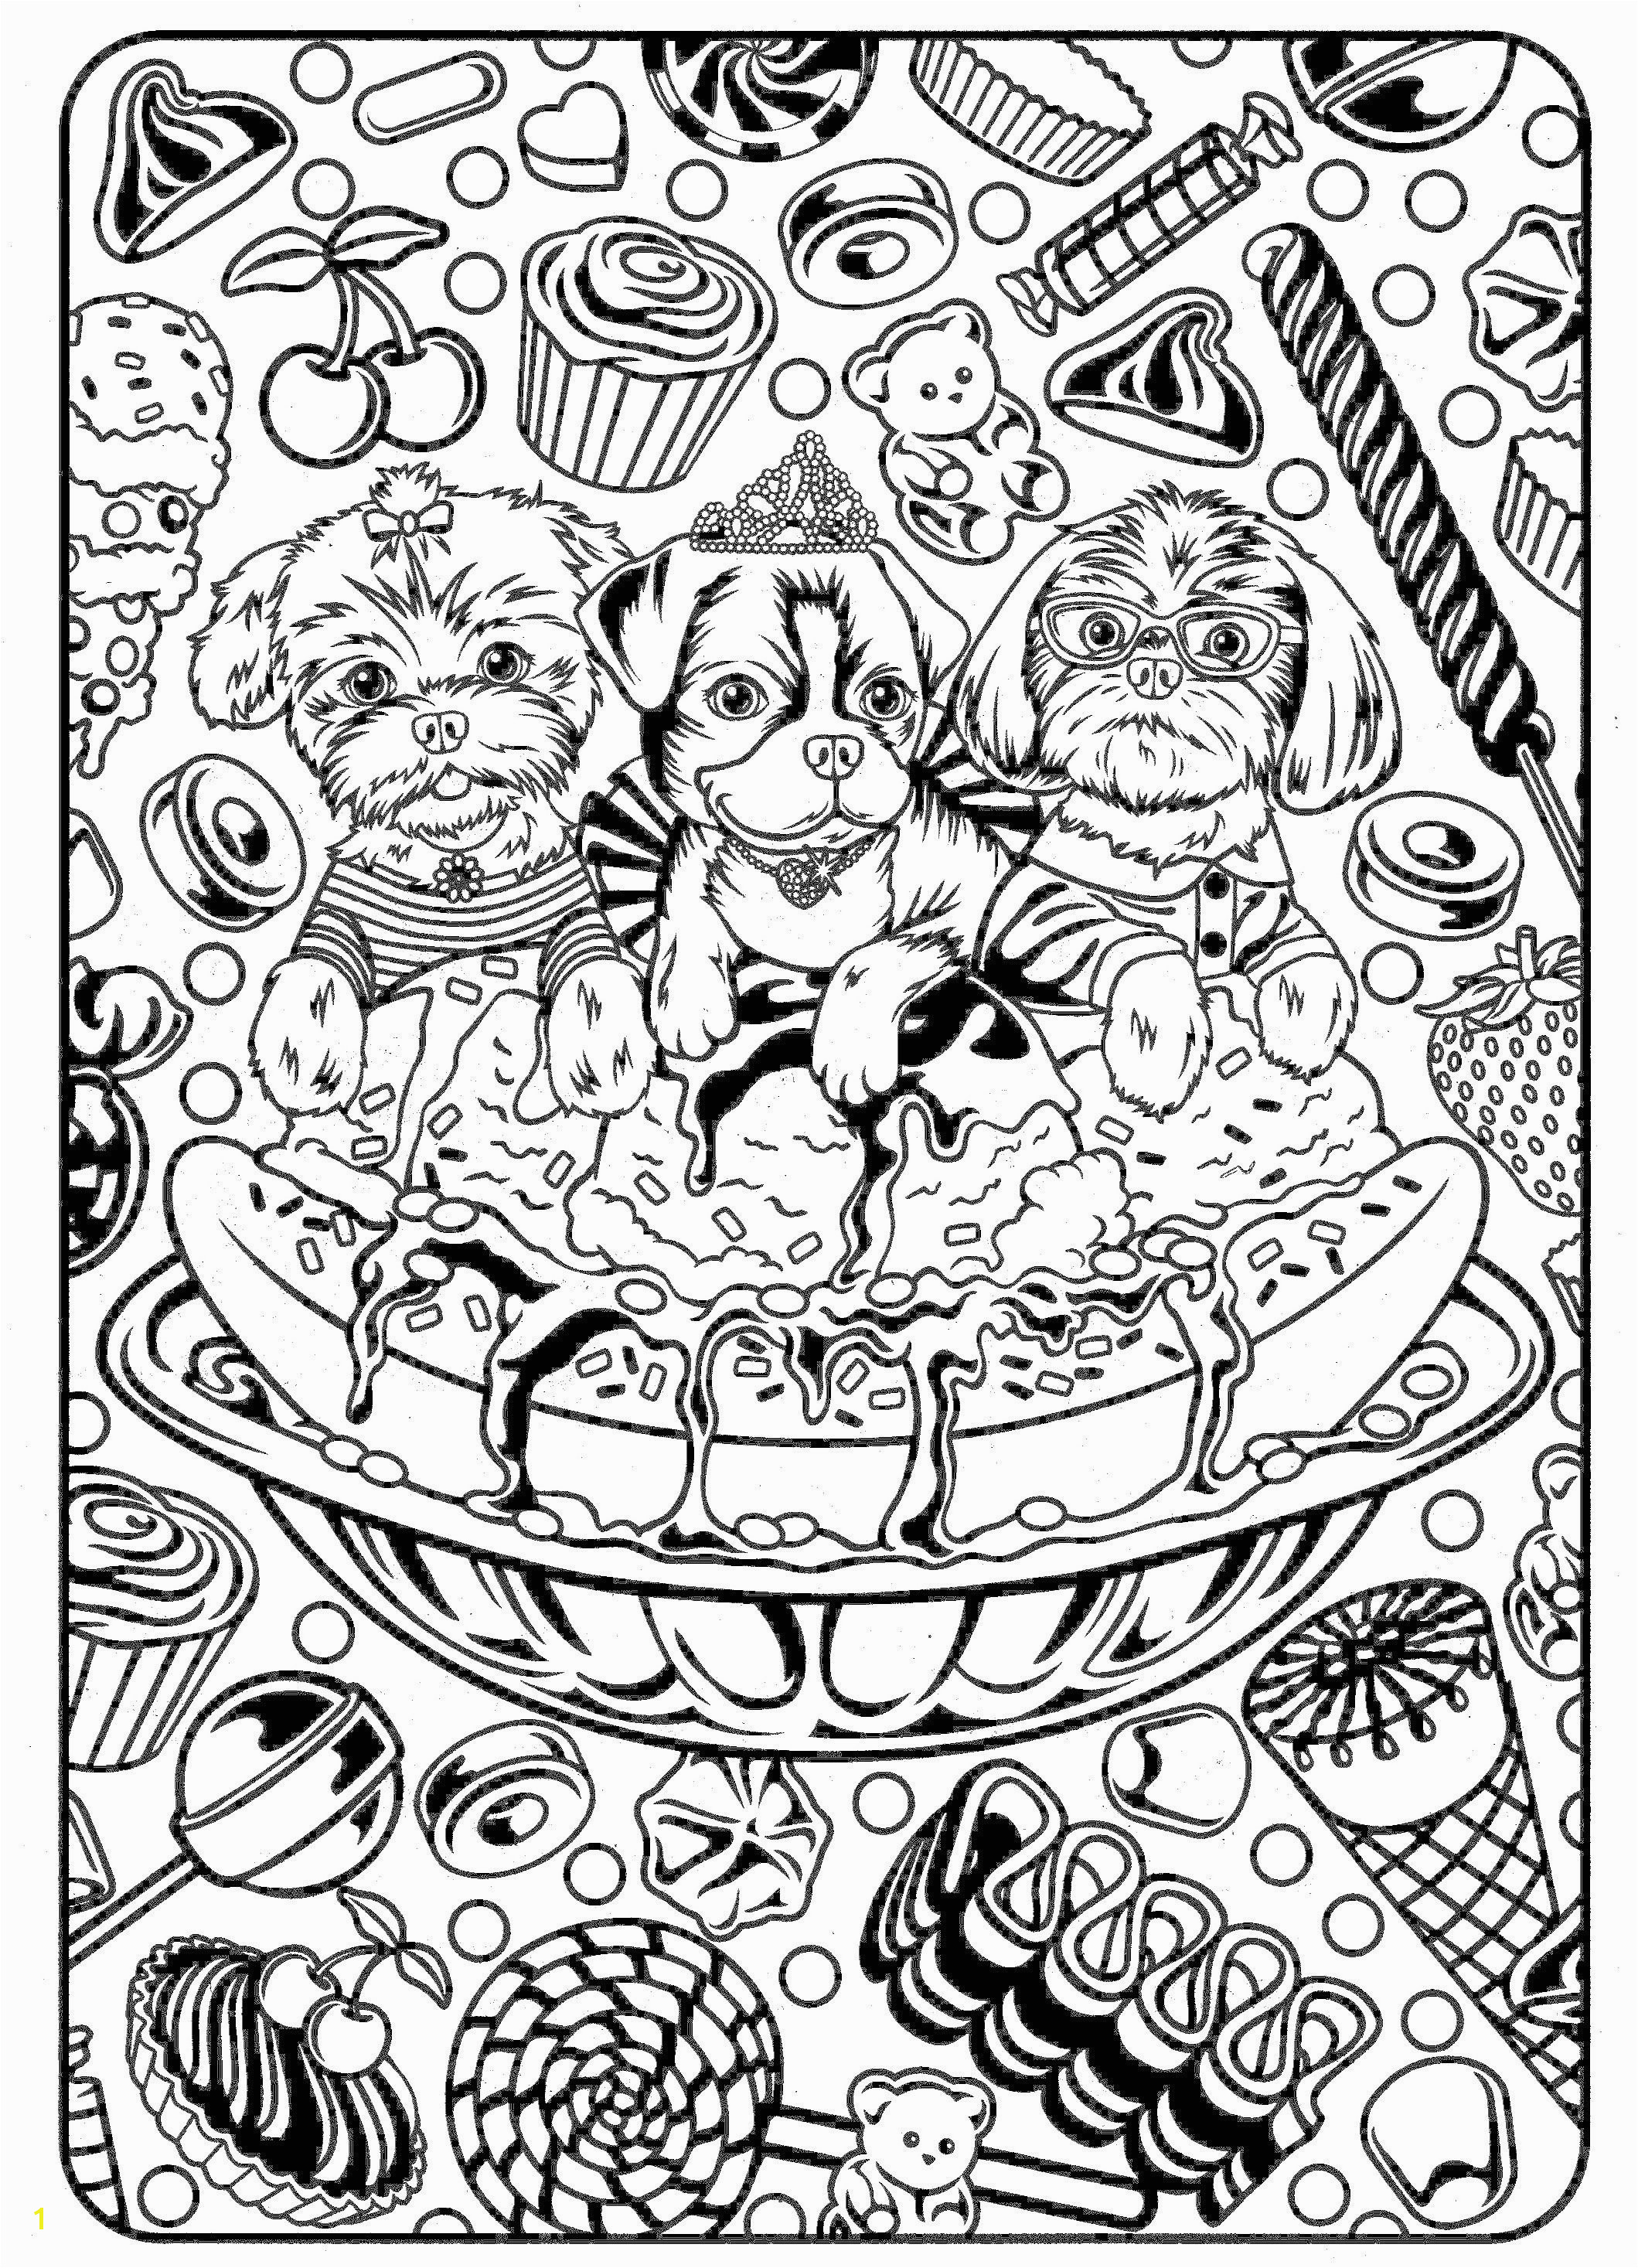 Anime Girl Coloring Pages Luxury Anime Girls Coloring Pages Crosbyandcosg